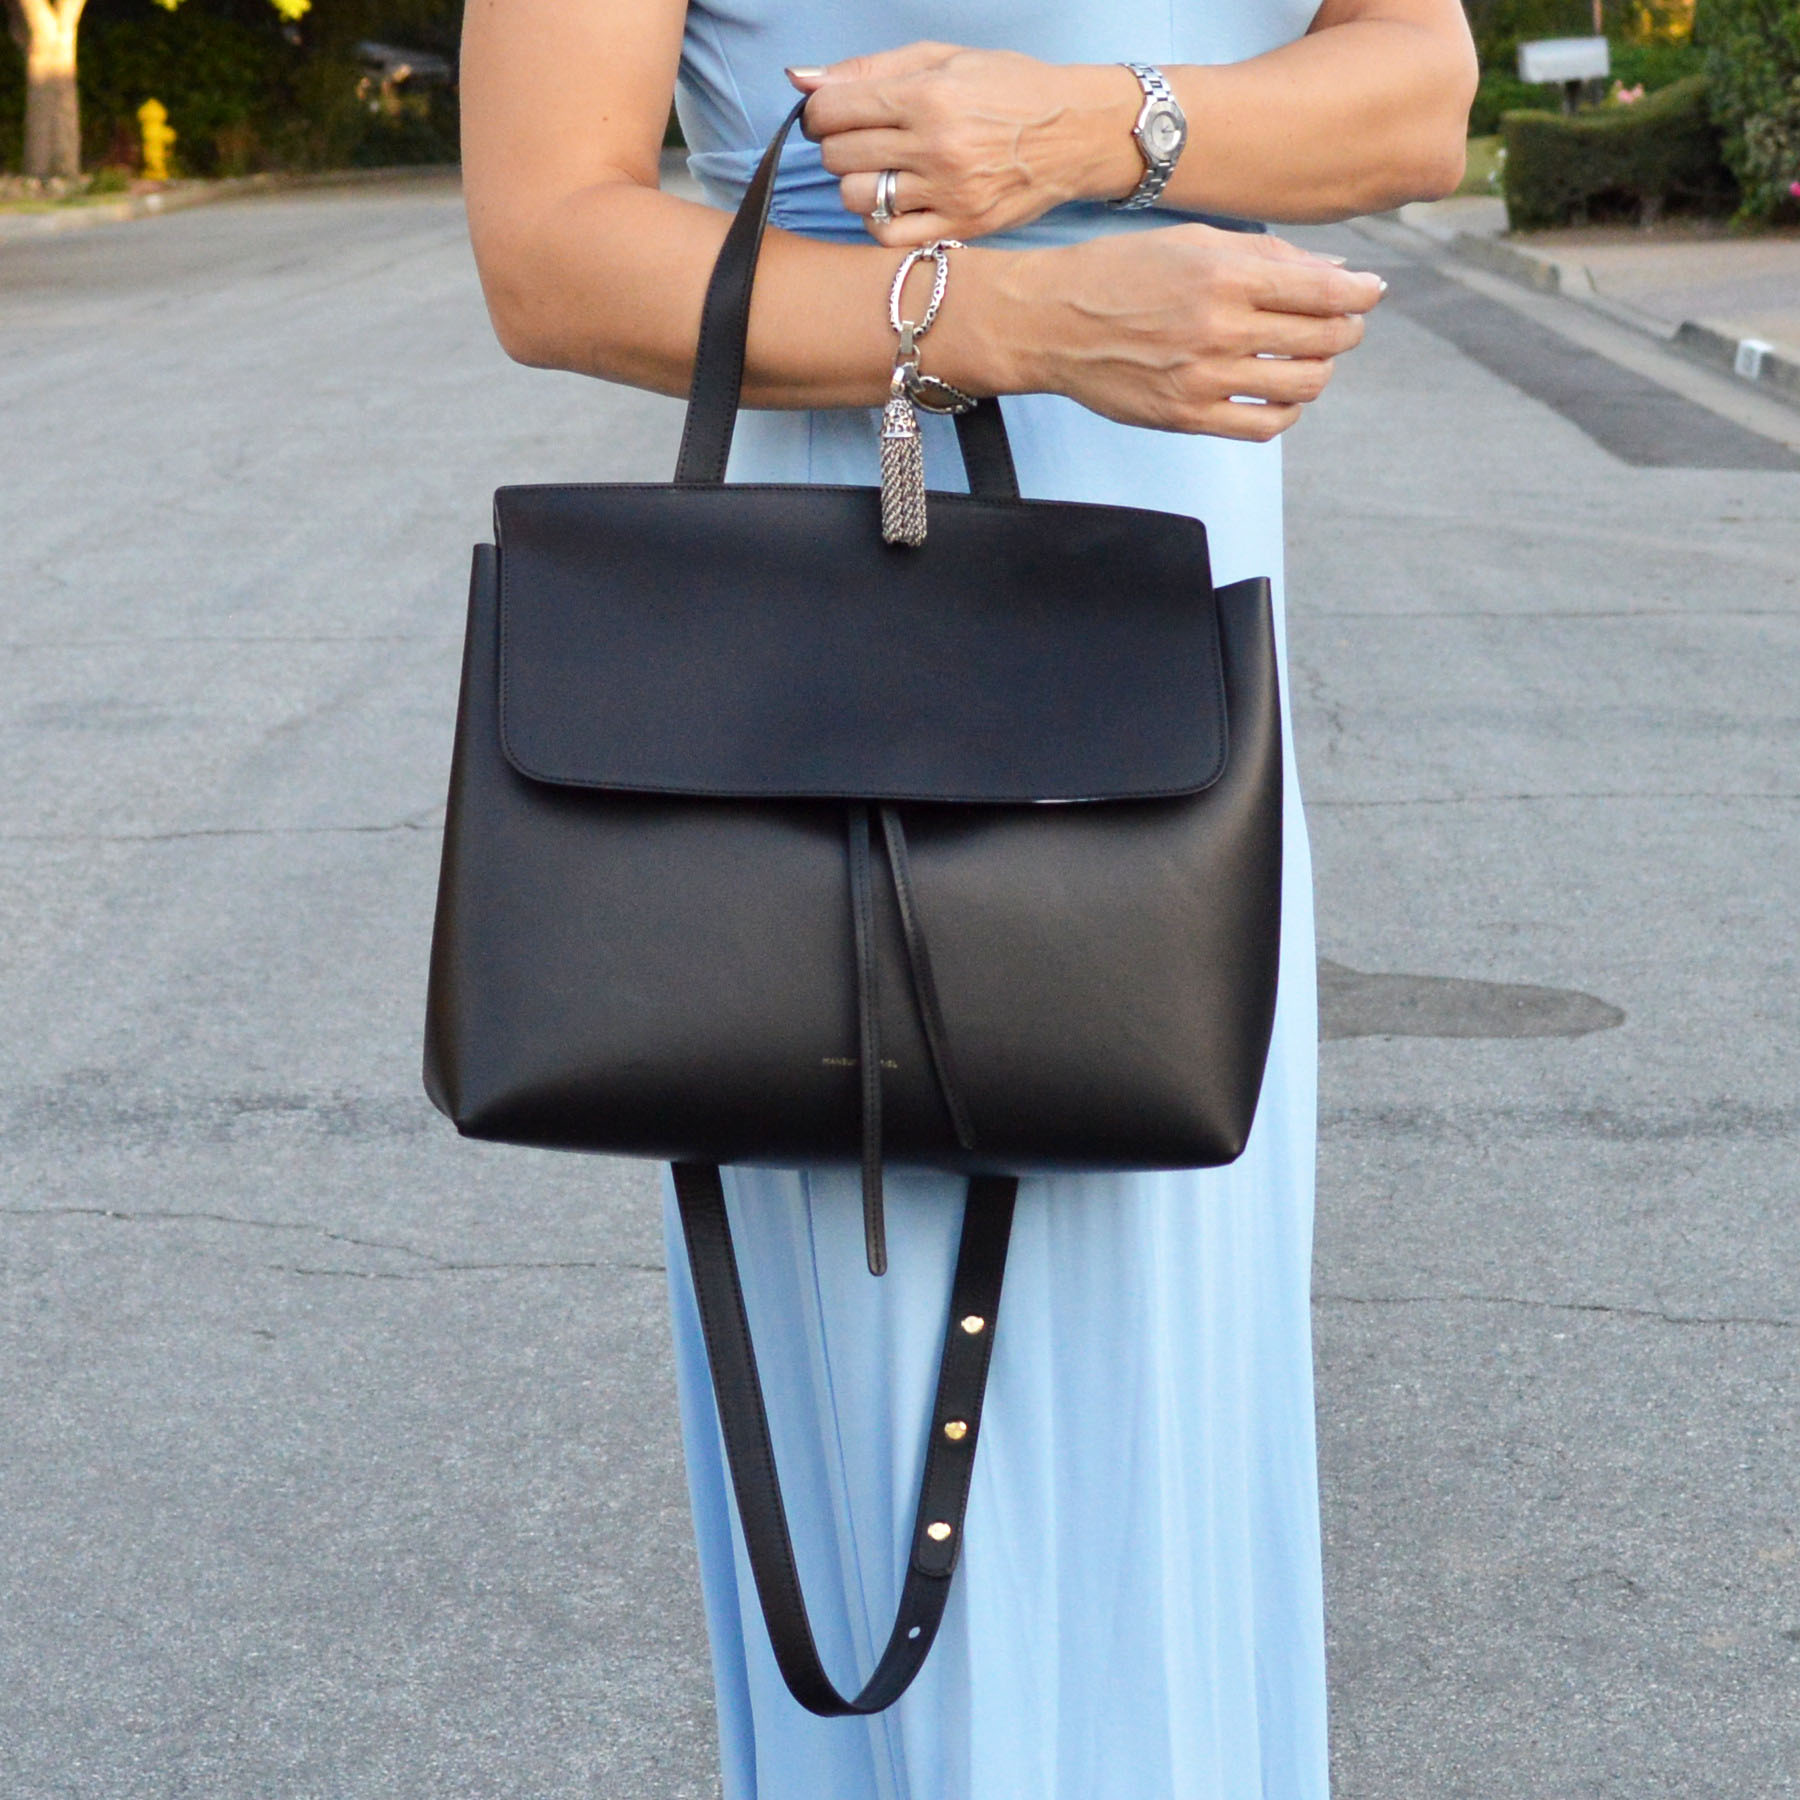 mansur gavriel lady bag with petite maxi dress